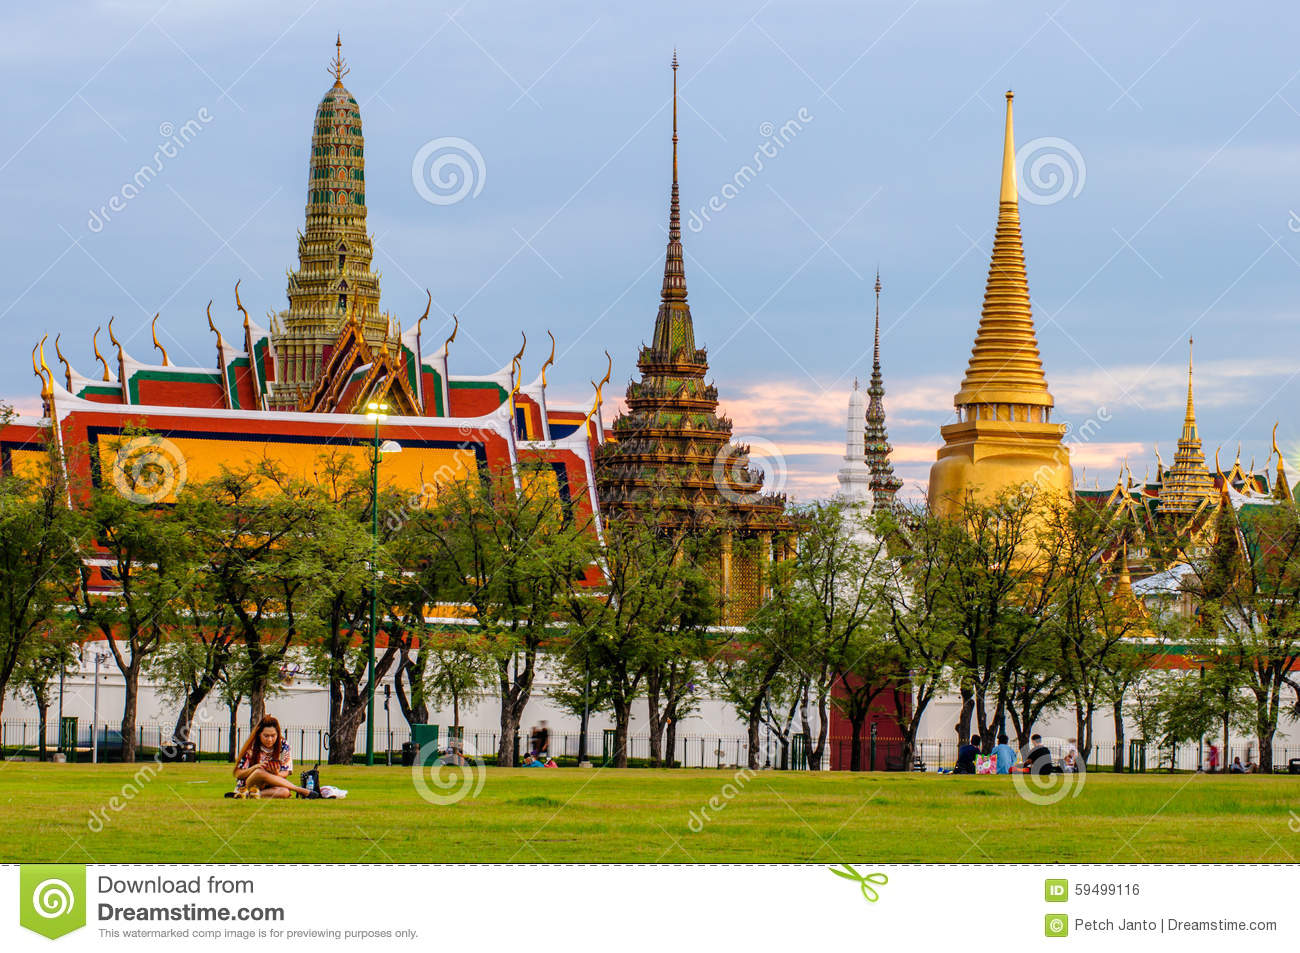 People Are Sitting In Sanam Luang In The Front Of Wat Phra Kaew And The Grand...